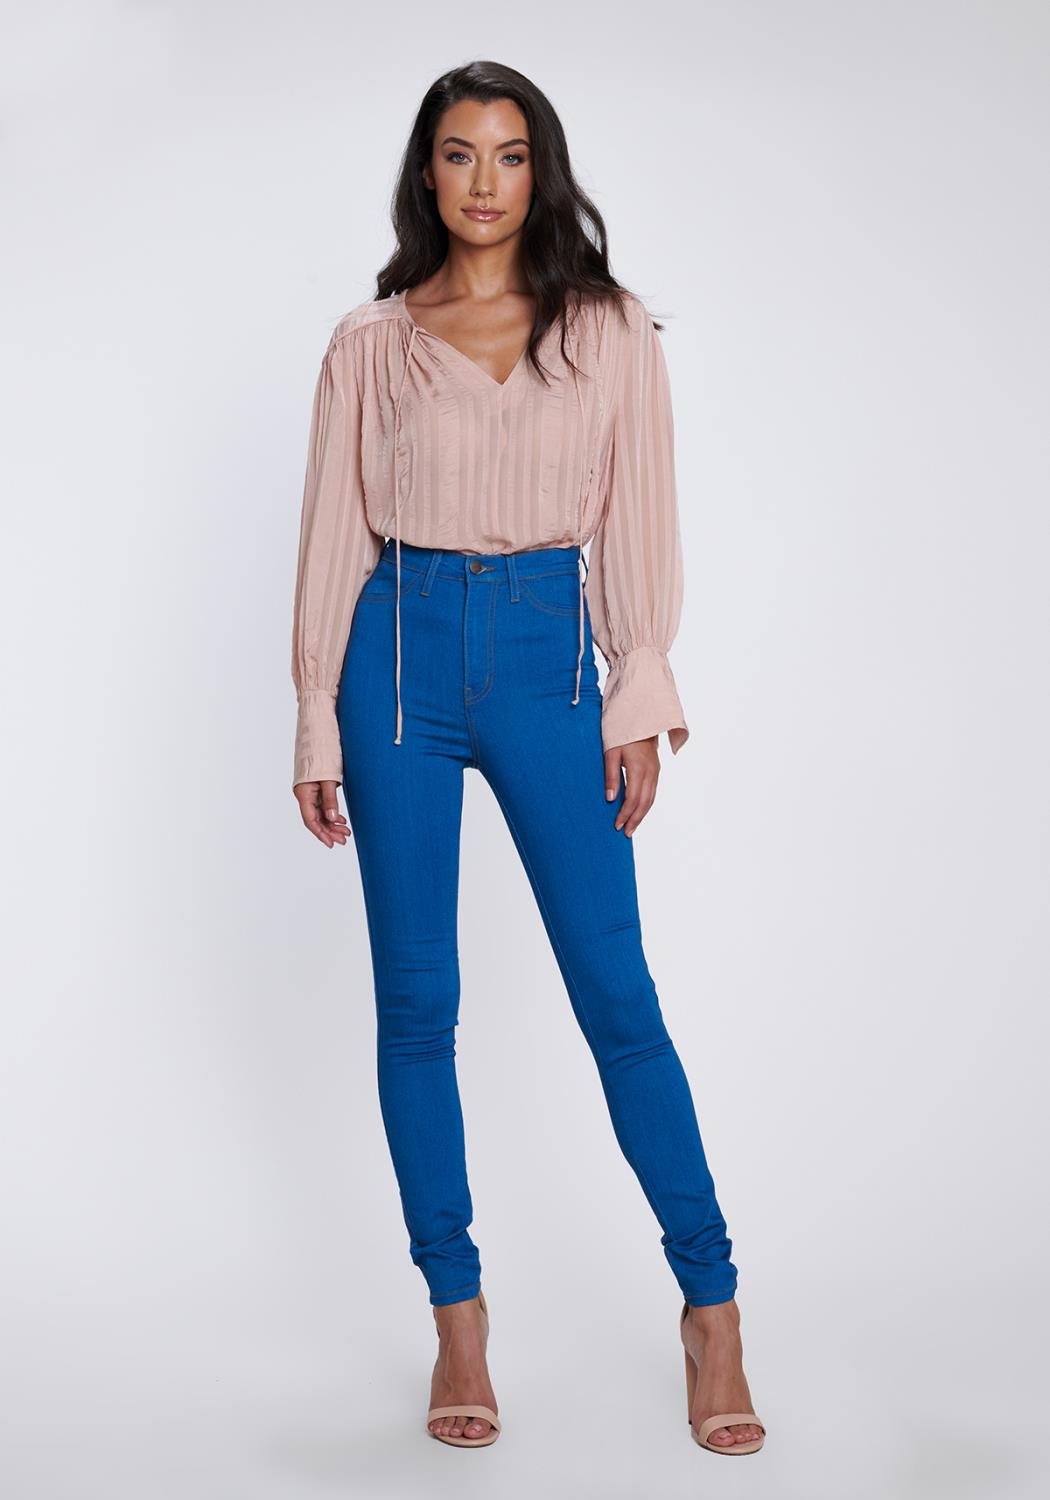 Retro High-Waisted Jeans